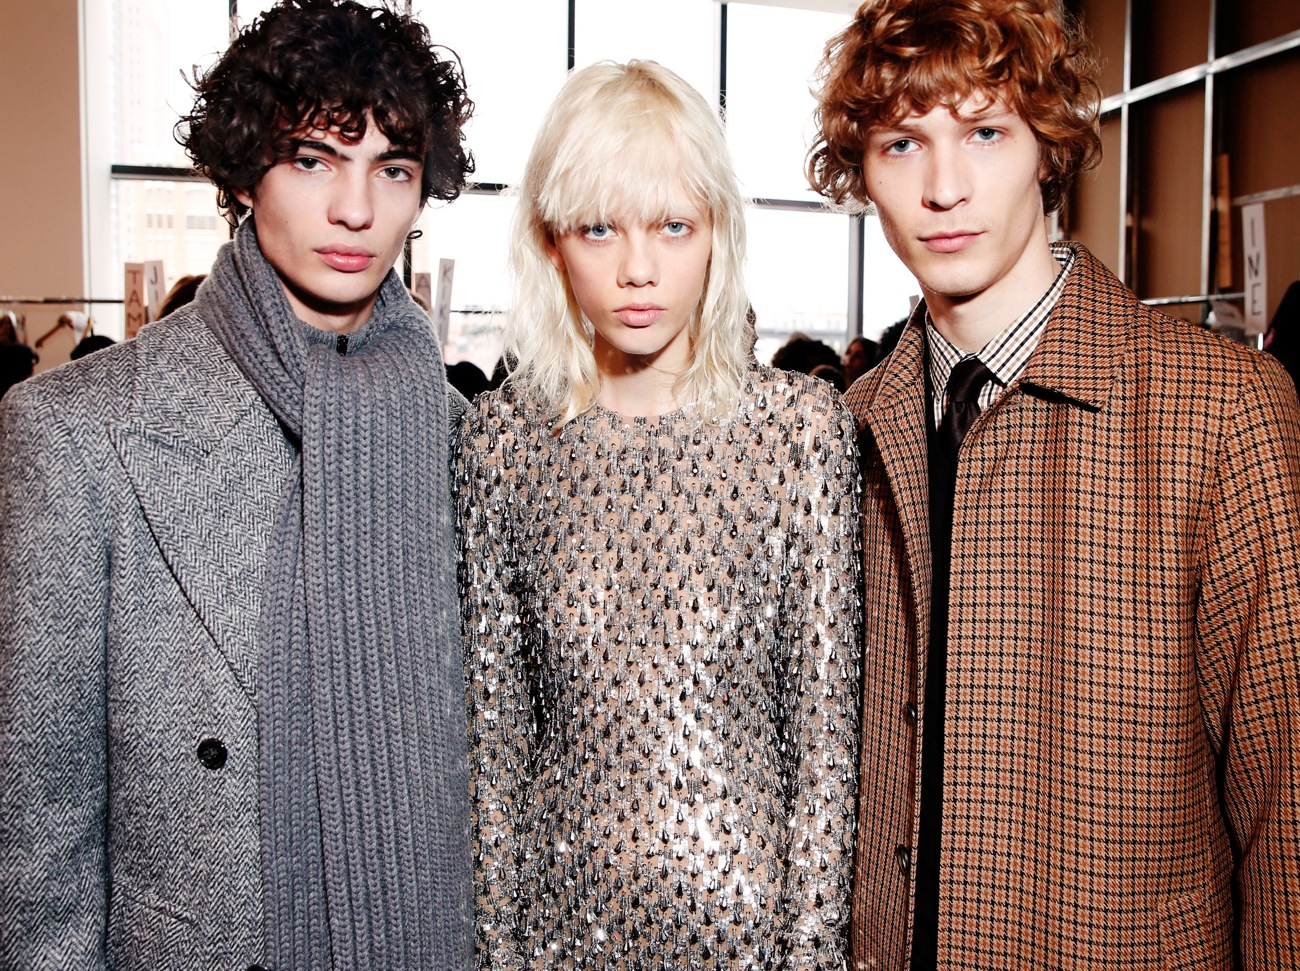 Backstage at the Michael Kors Fall Winter 2016 Show 8